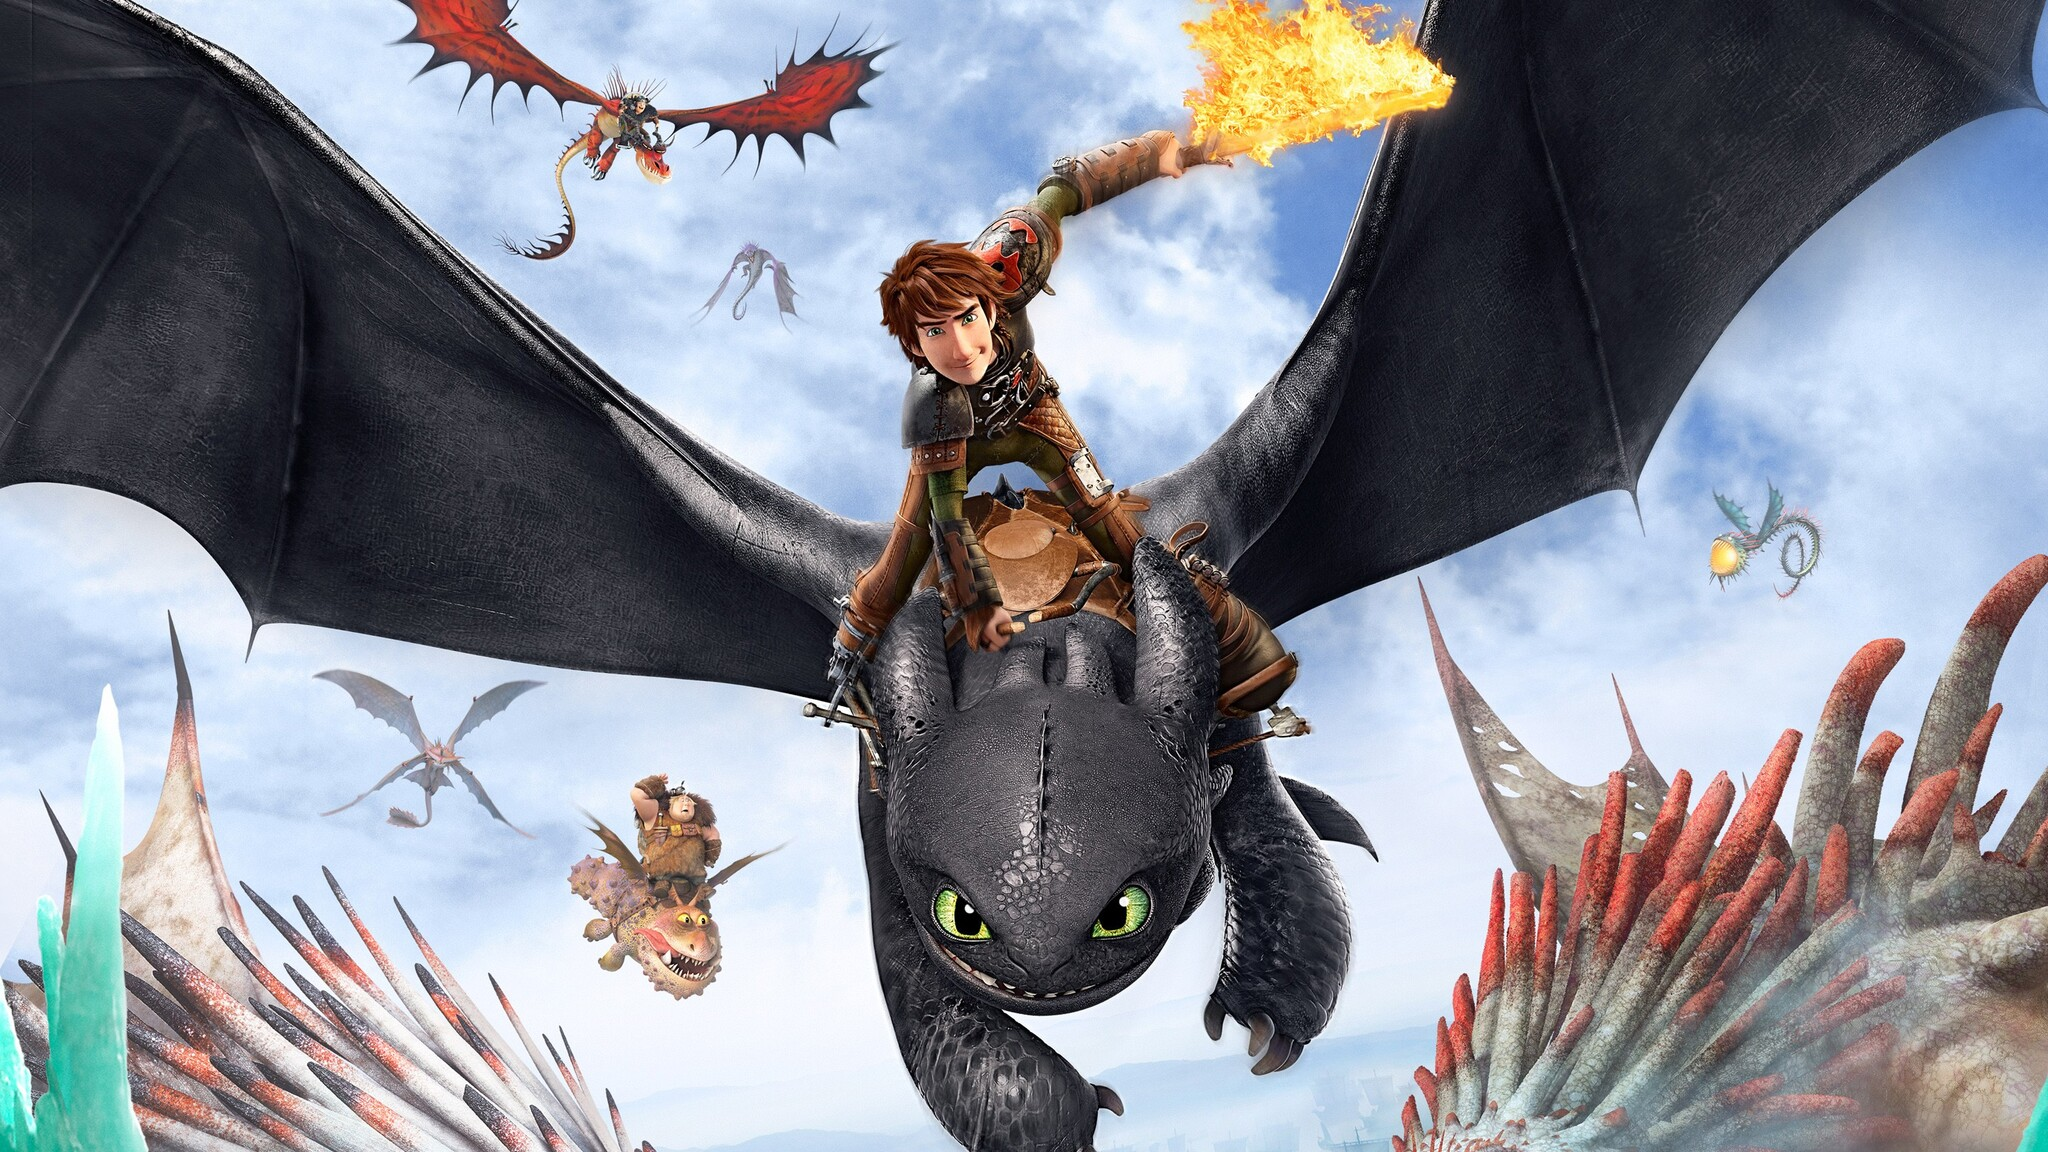 2048x1152 how to train your dragon 2 2048x1152 resolution - How to train your dragon hd download ...